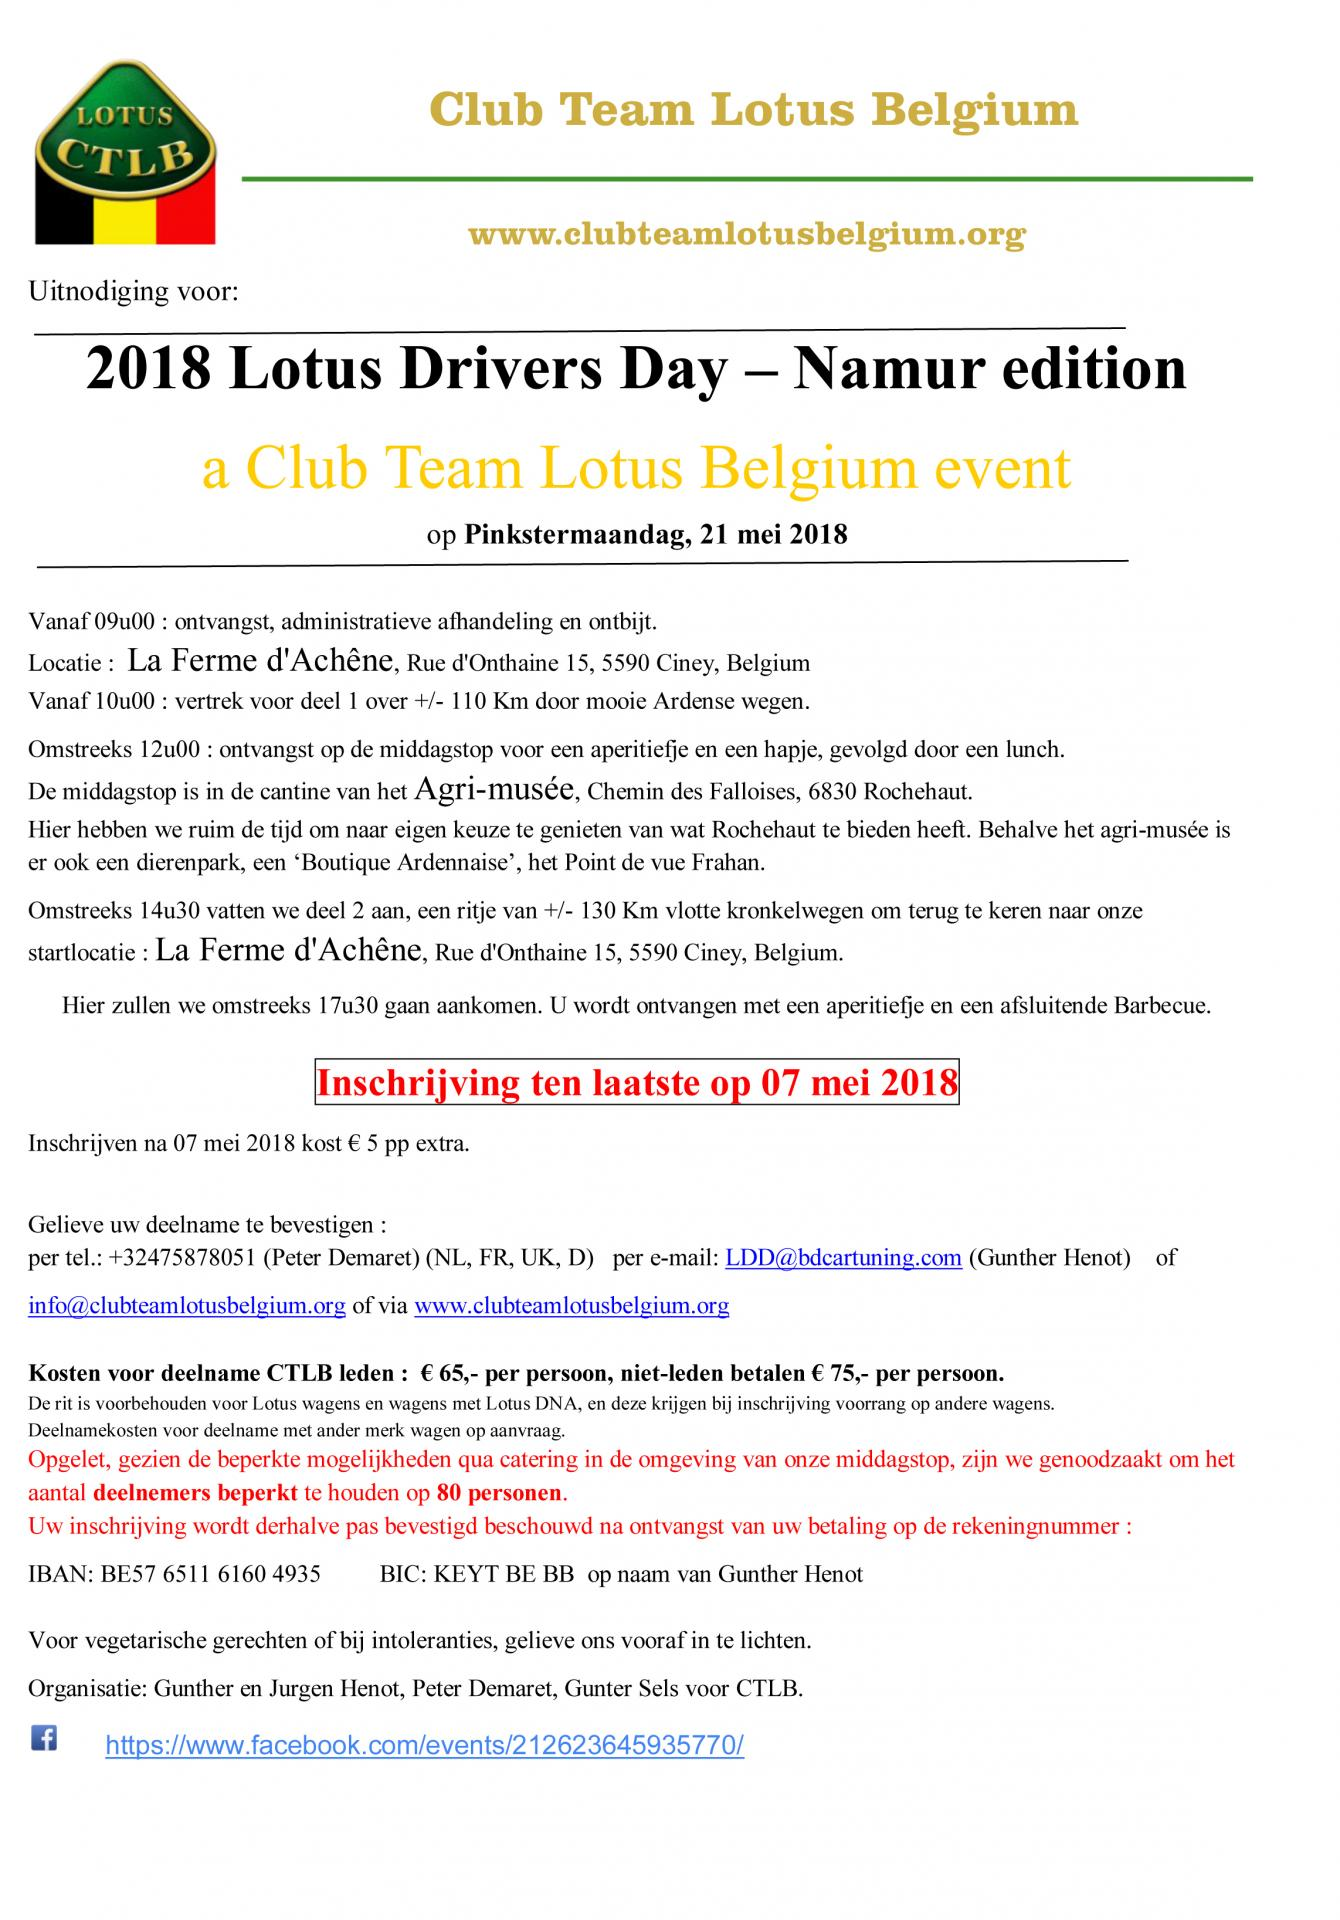 Uitnodiging lotus drivers day